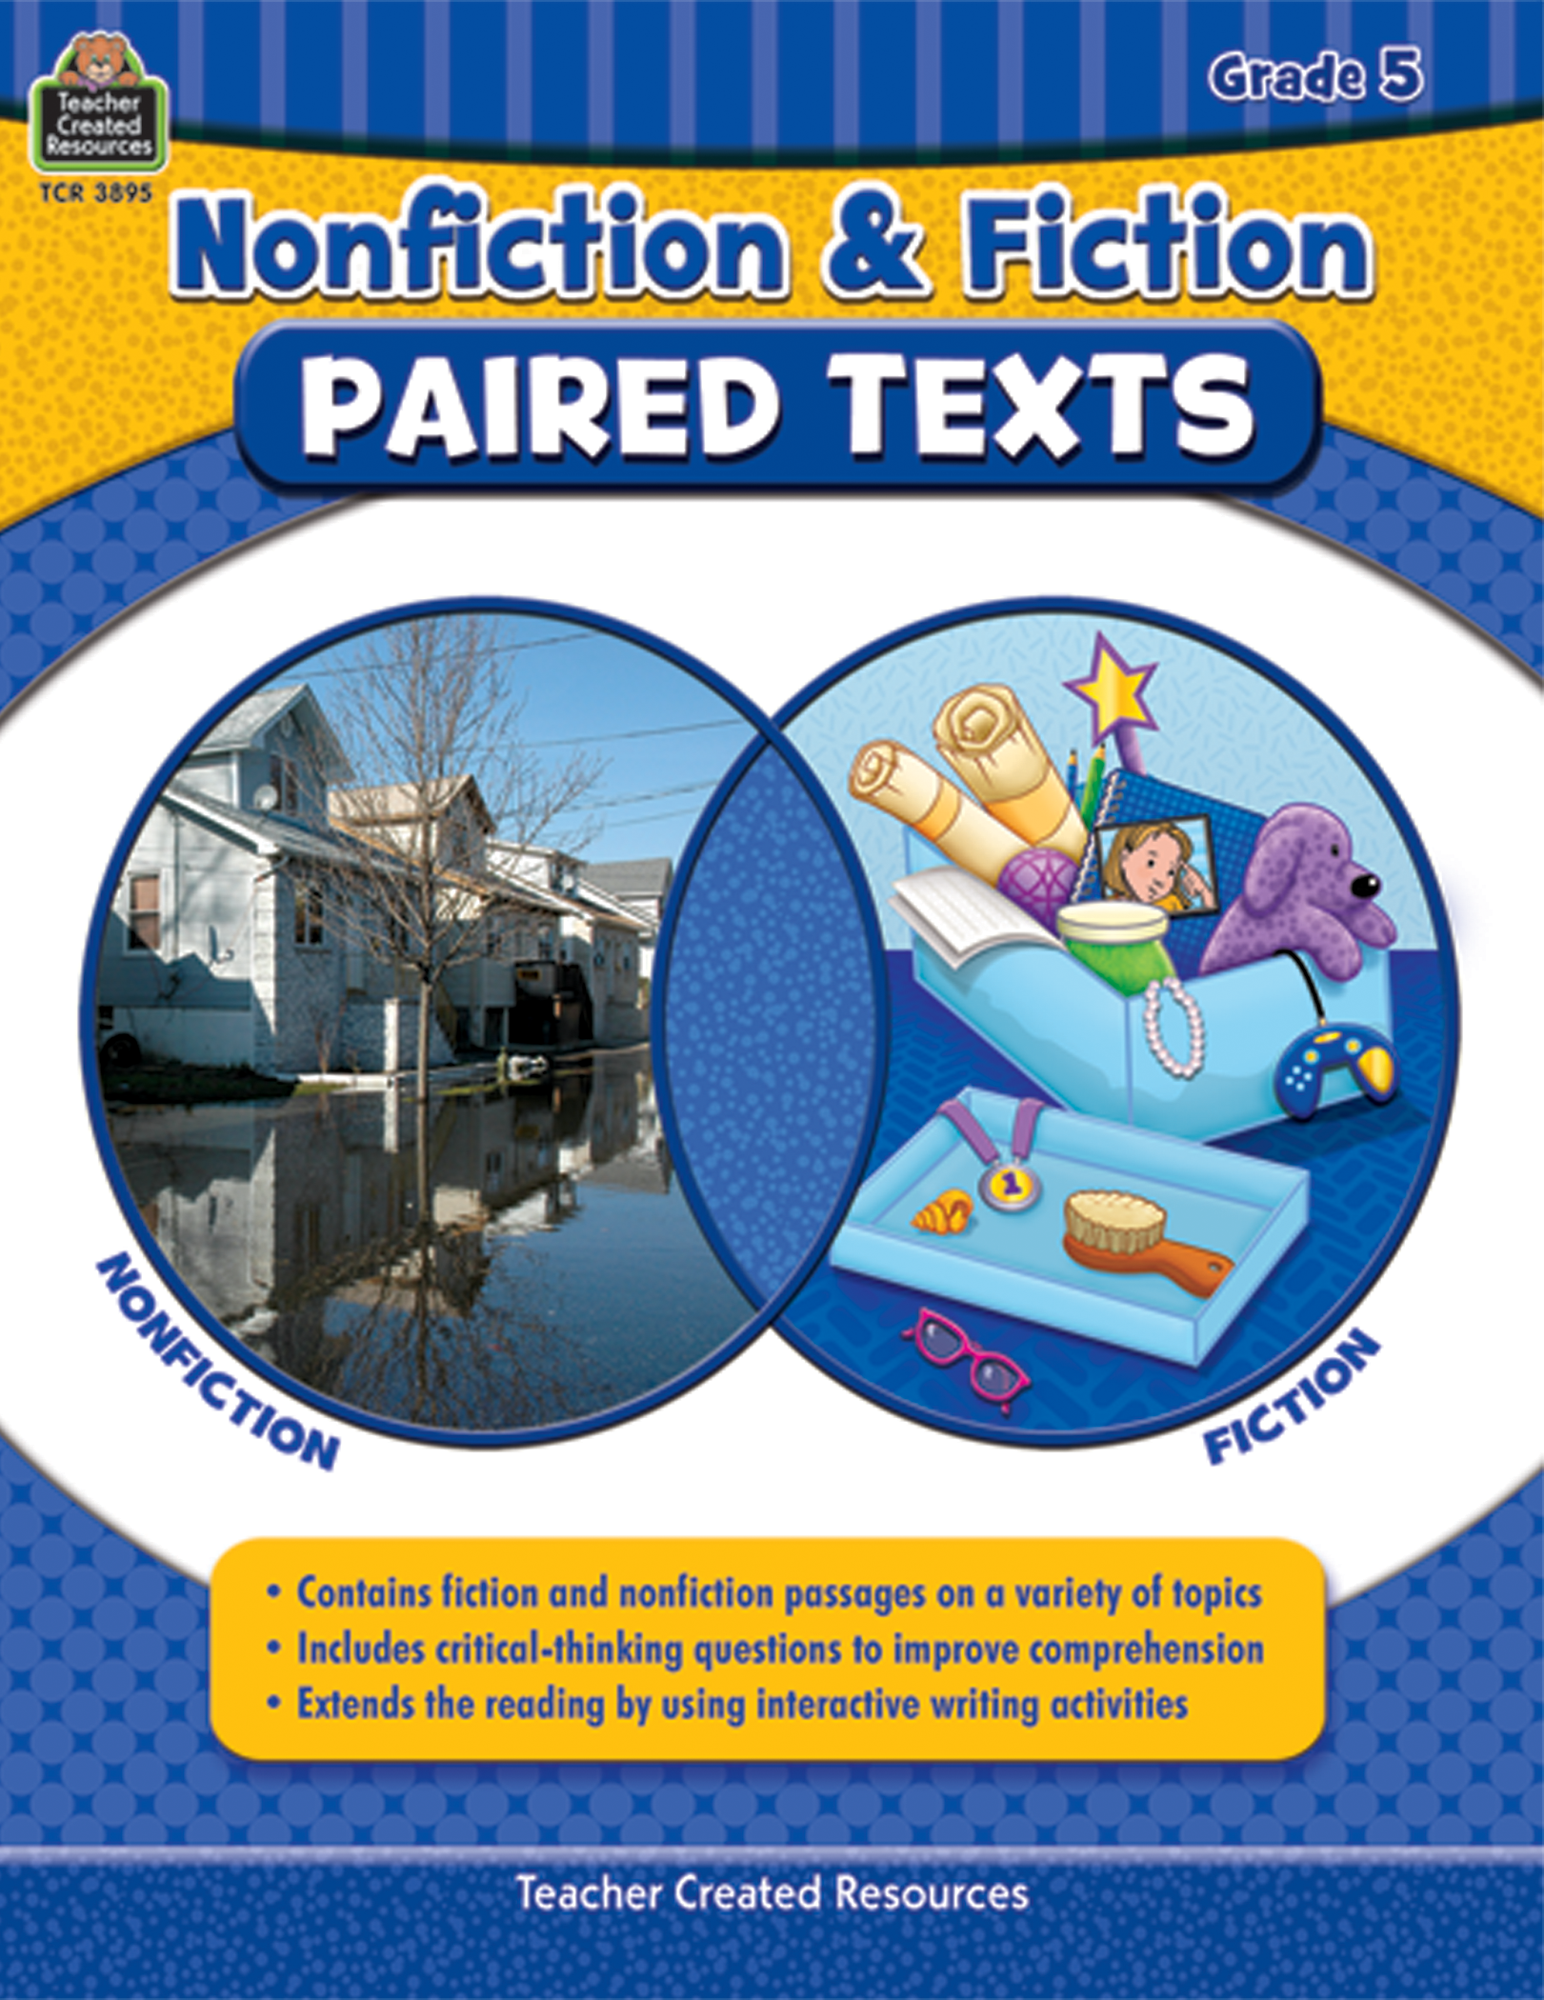 reading passages with critical thinking questions The directed reading thinking activity (drta) is a comprehension strategy that guides students in asking questions about a text, making predictions, and then reading to confirm or refute their predictions.